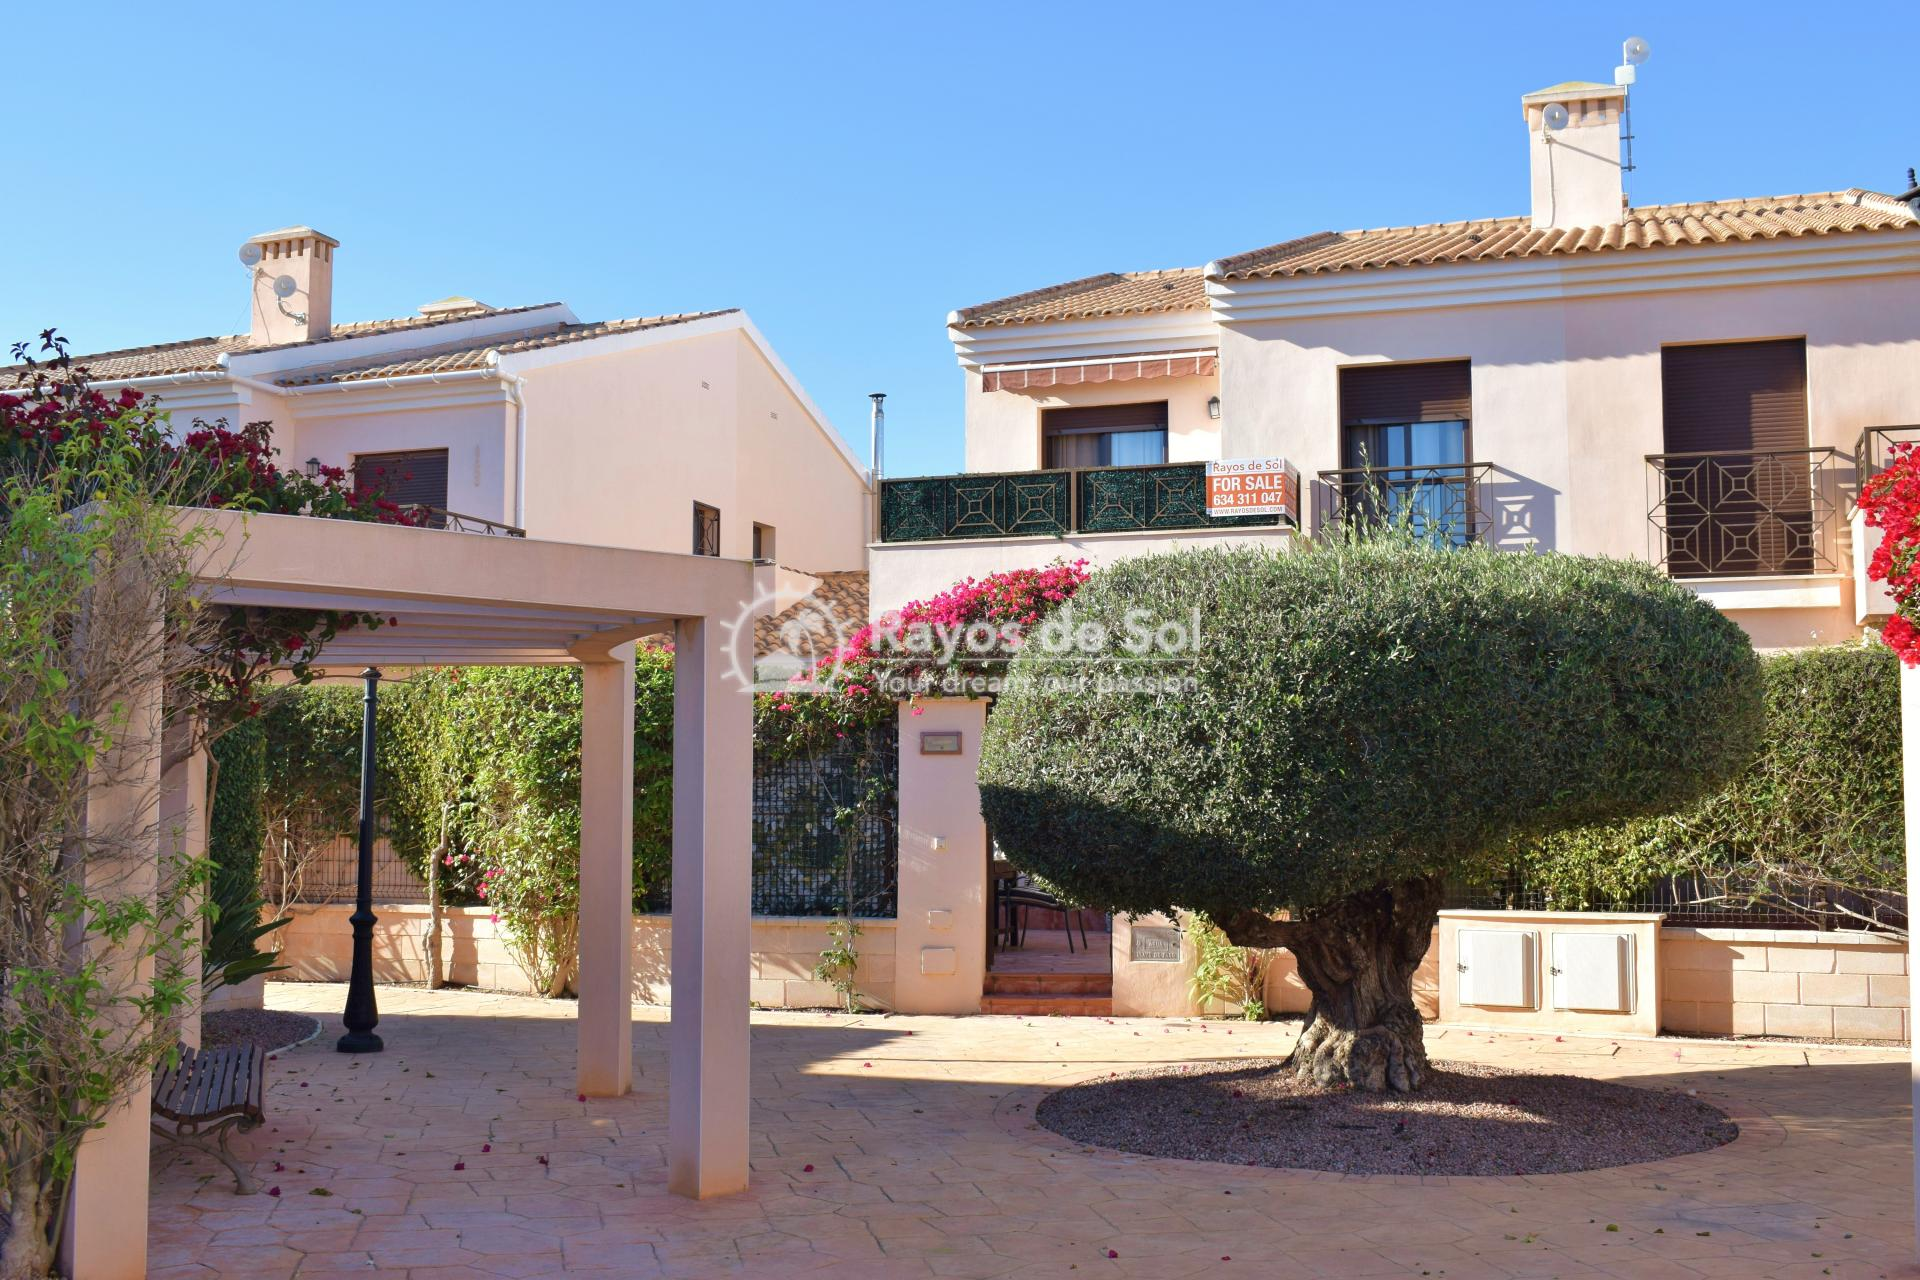 Townhouse  in San Cayetano, Costa Cálida (SCRE0026) - 23